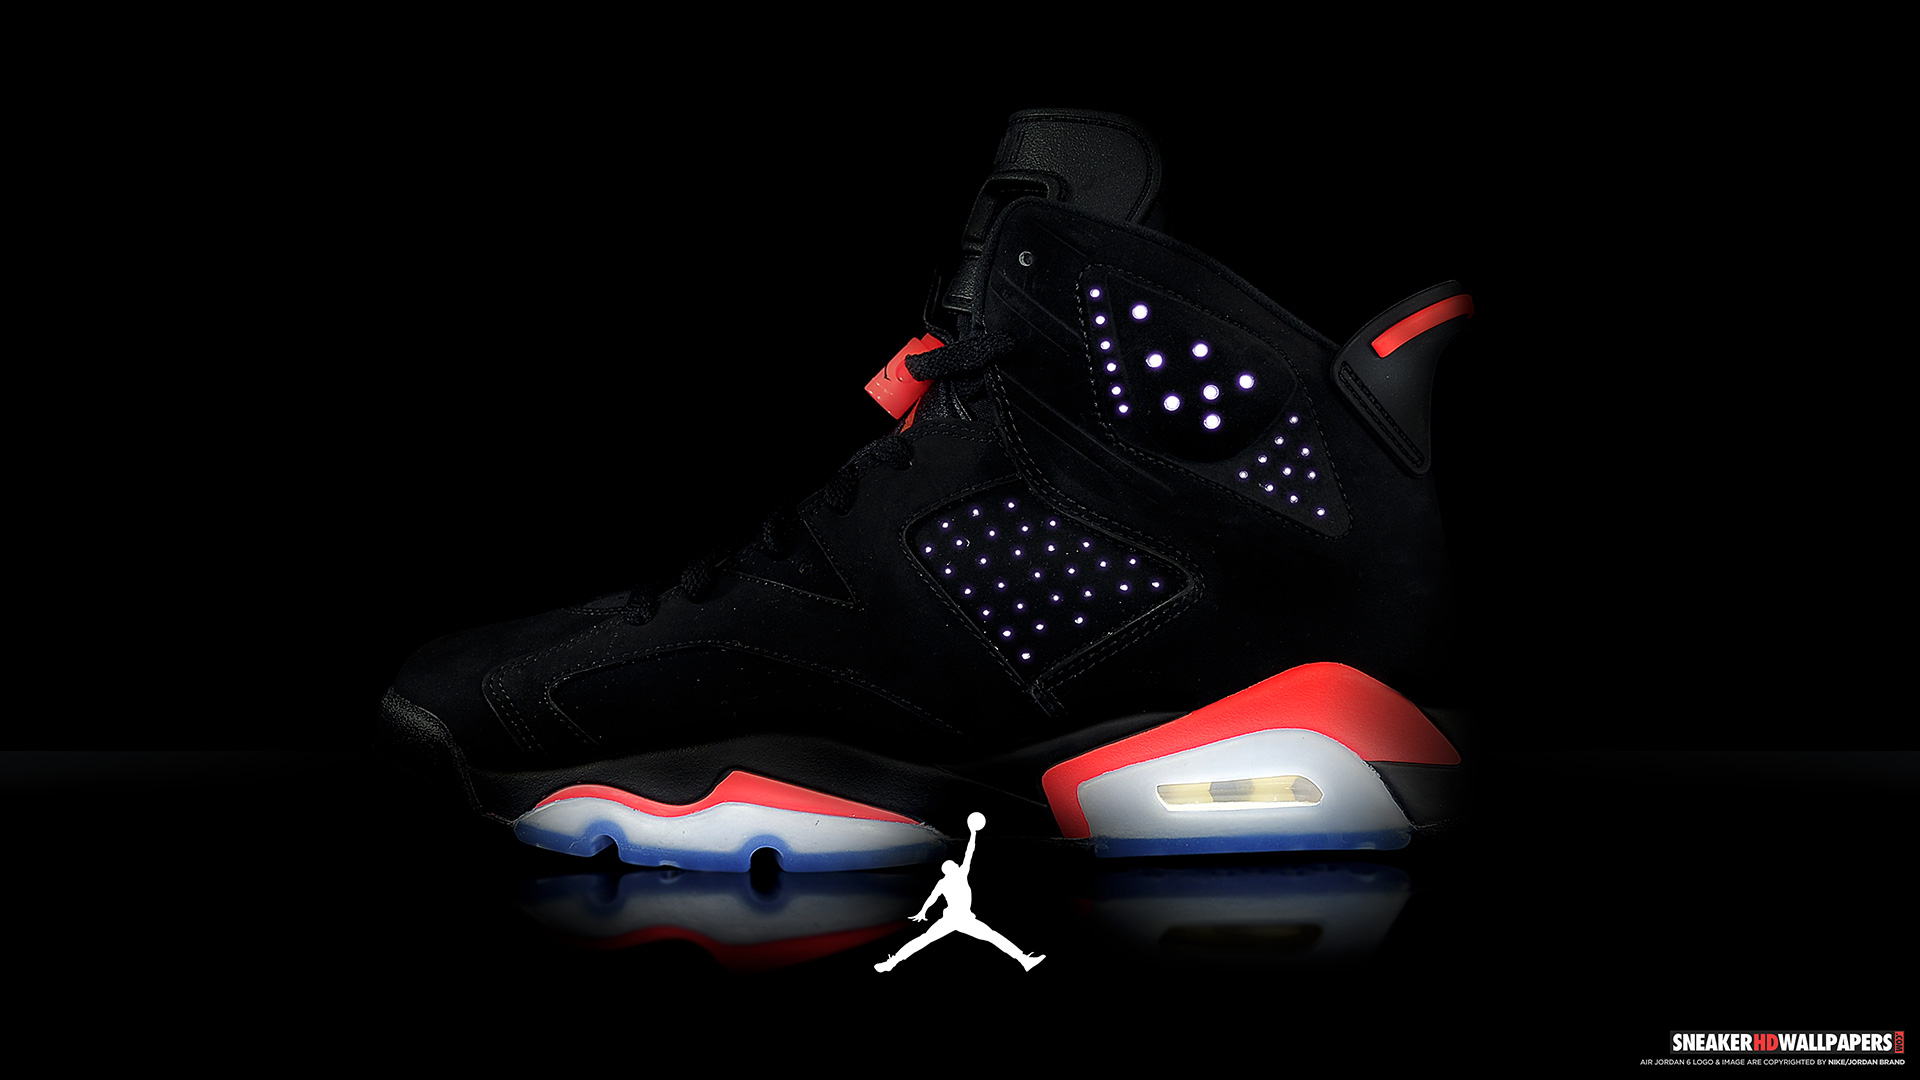 sports shoes f1f19 93516 Sneaker Wallpapers SneakerNewscom 1920x1200. View 0. SneakerHDWallpaperscom  Your favorite sneakers in HD and mobile 1920x1080